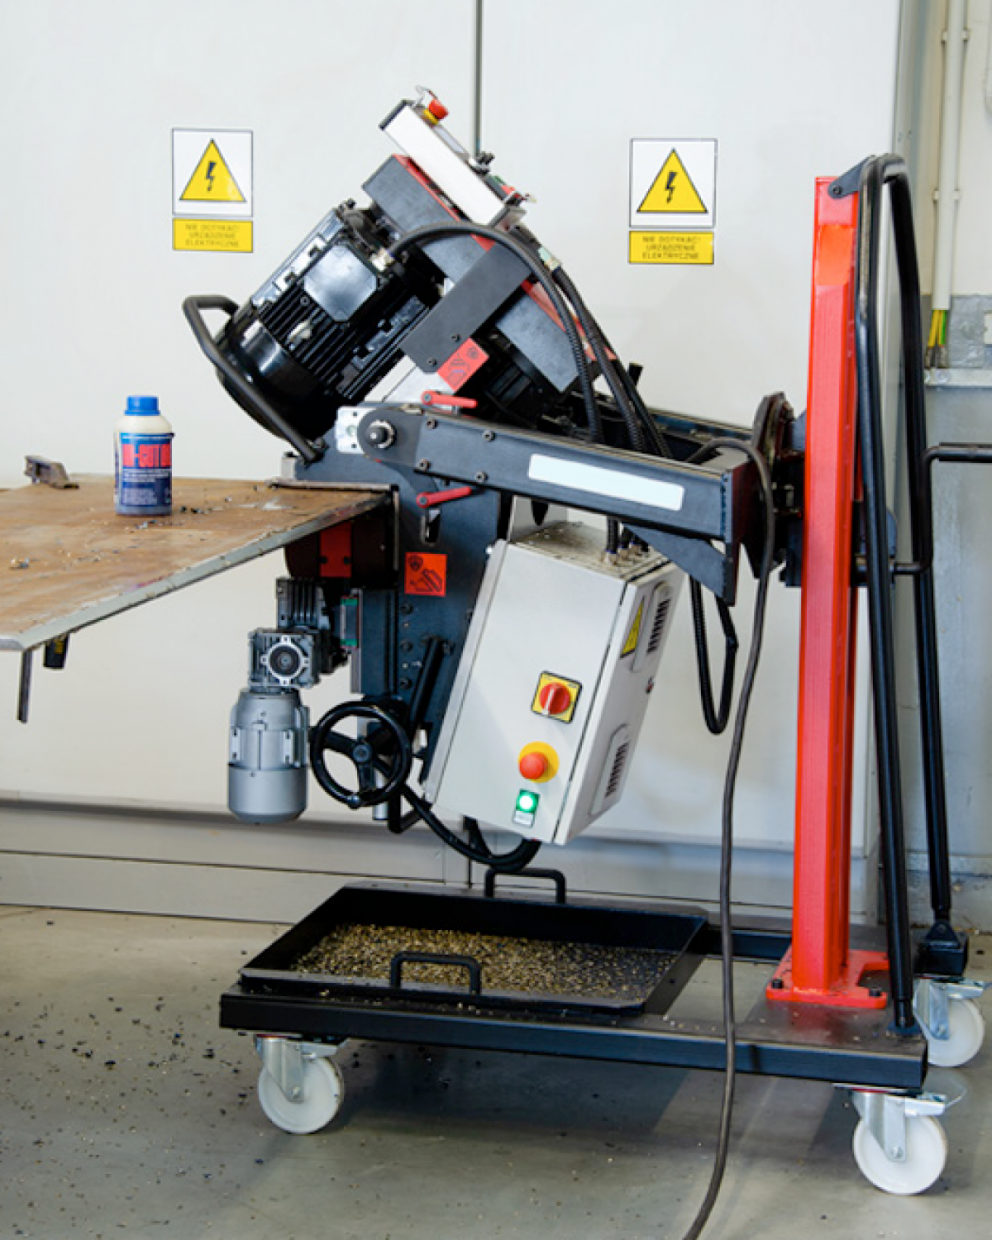 DOUBLE-SIDED BEVELLING & PRECISE SPINDLE SPEED ADJUSTMENT